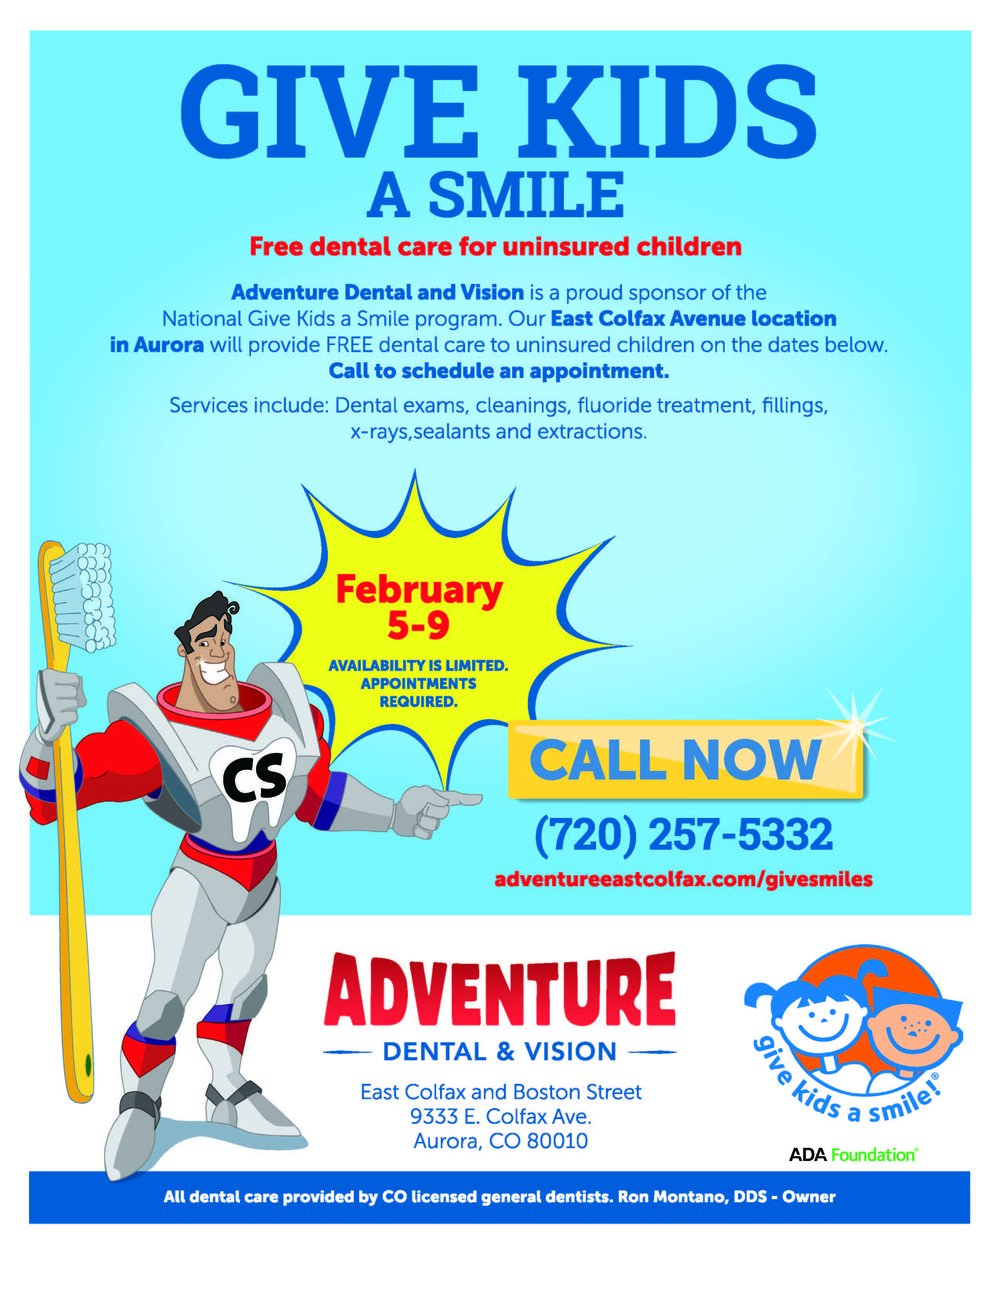 Adventure Dental GKAS East Colfax.jpg